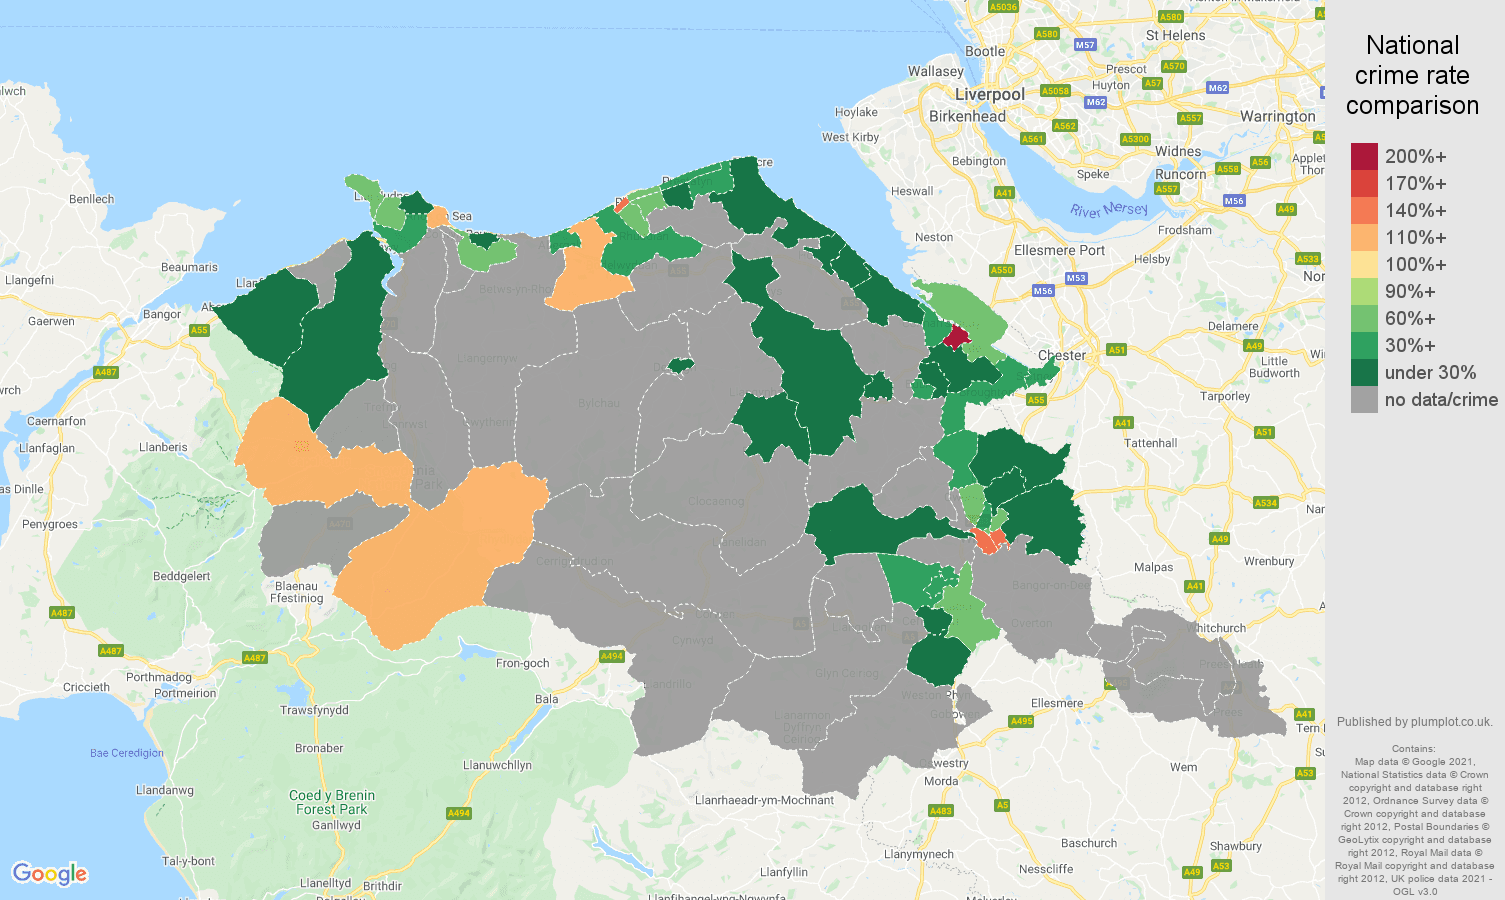 Clwyd bicycle theft crime rate comparison map